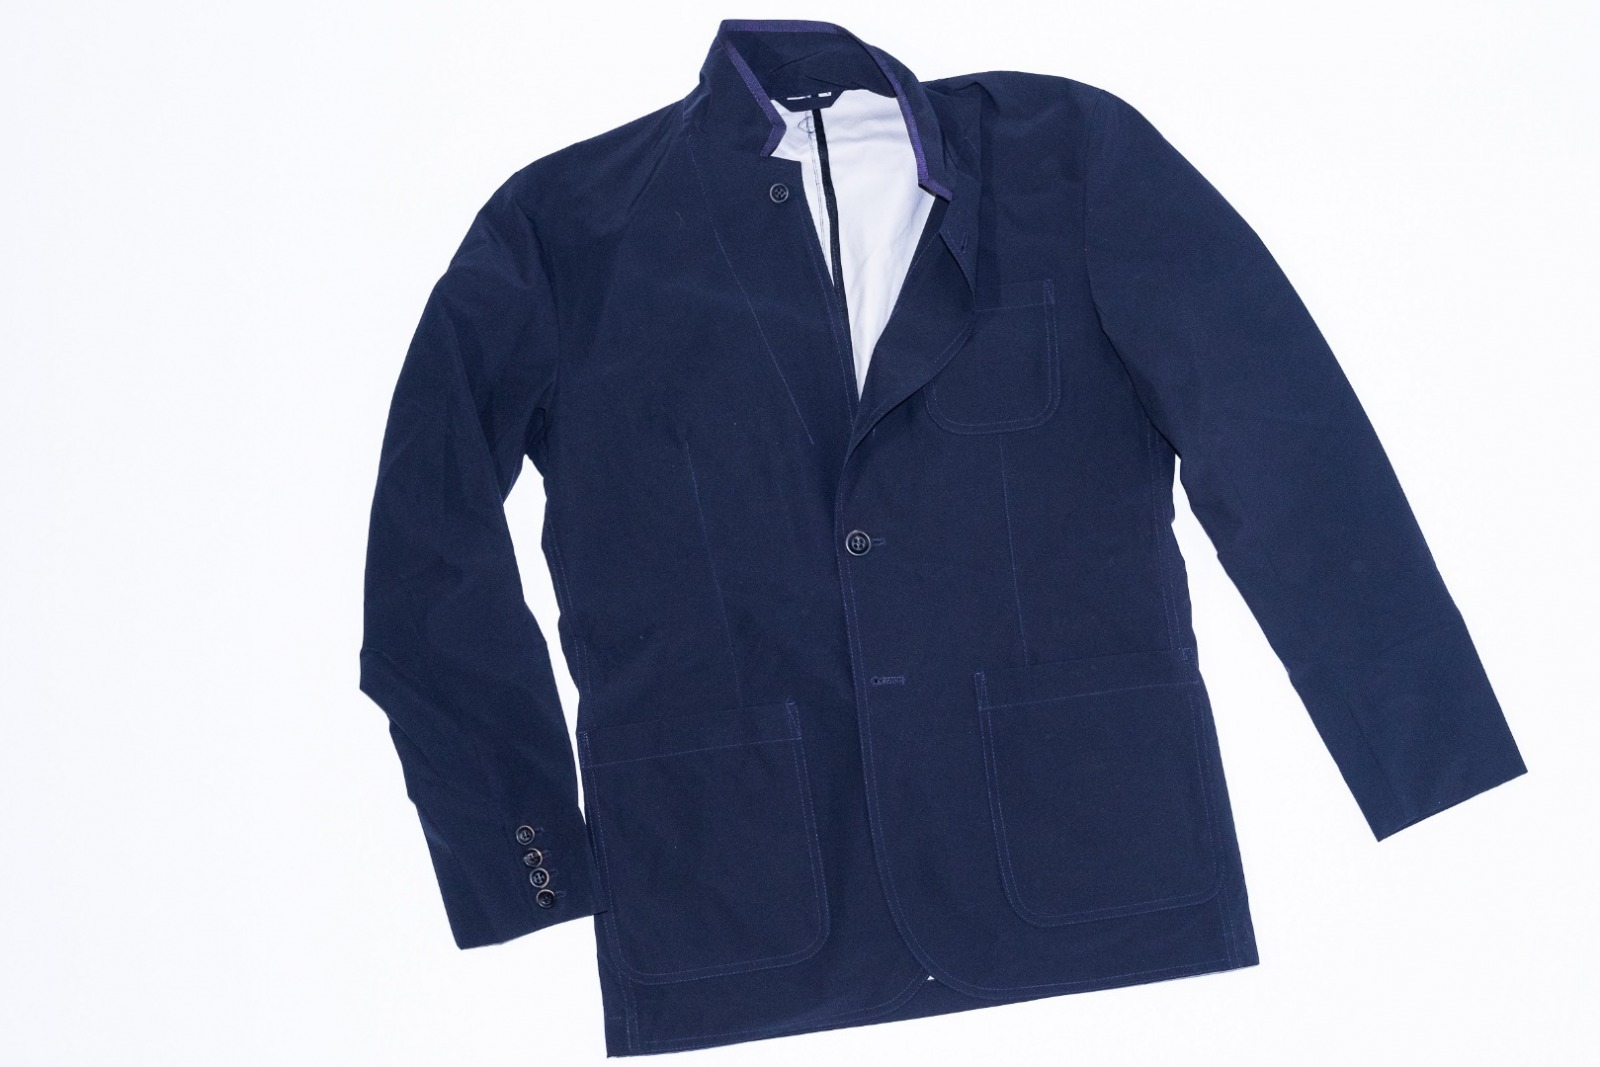 Pocketparachute Blazer - Navy Blue